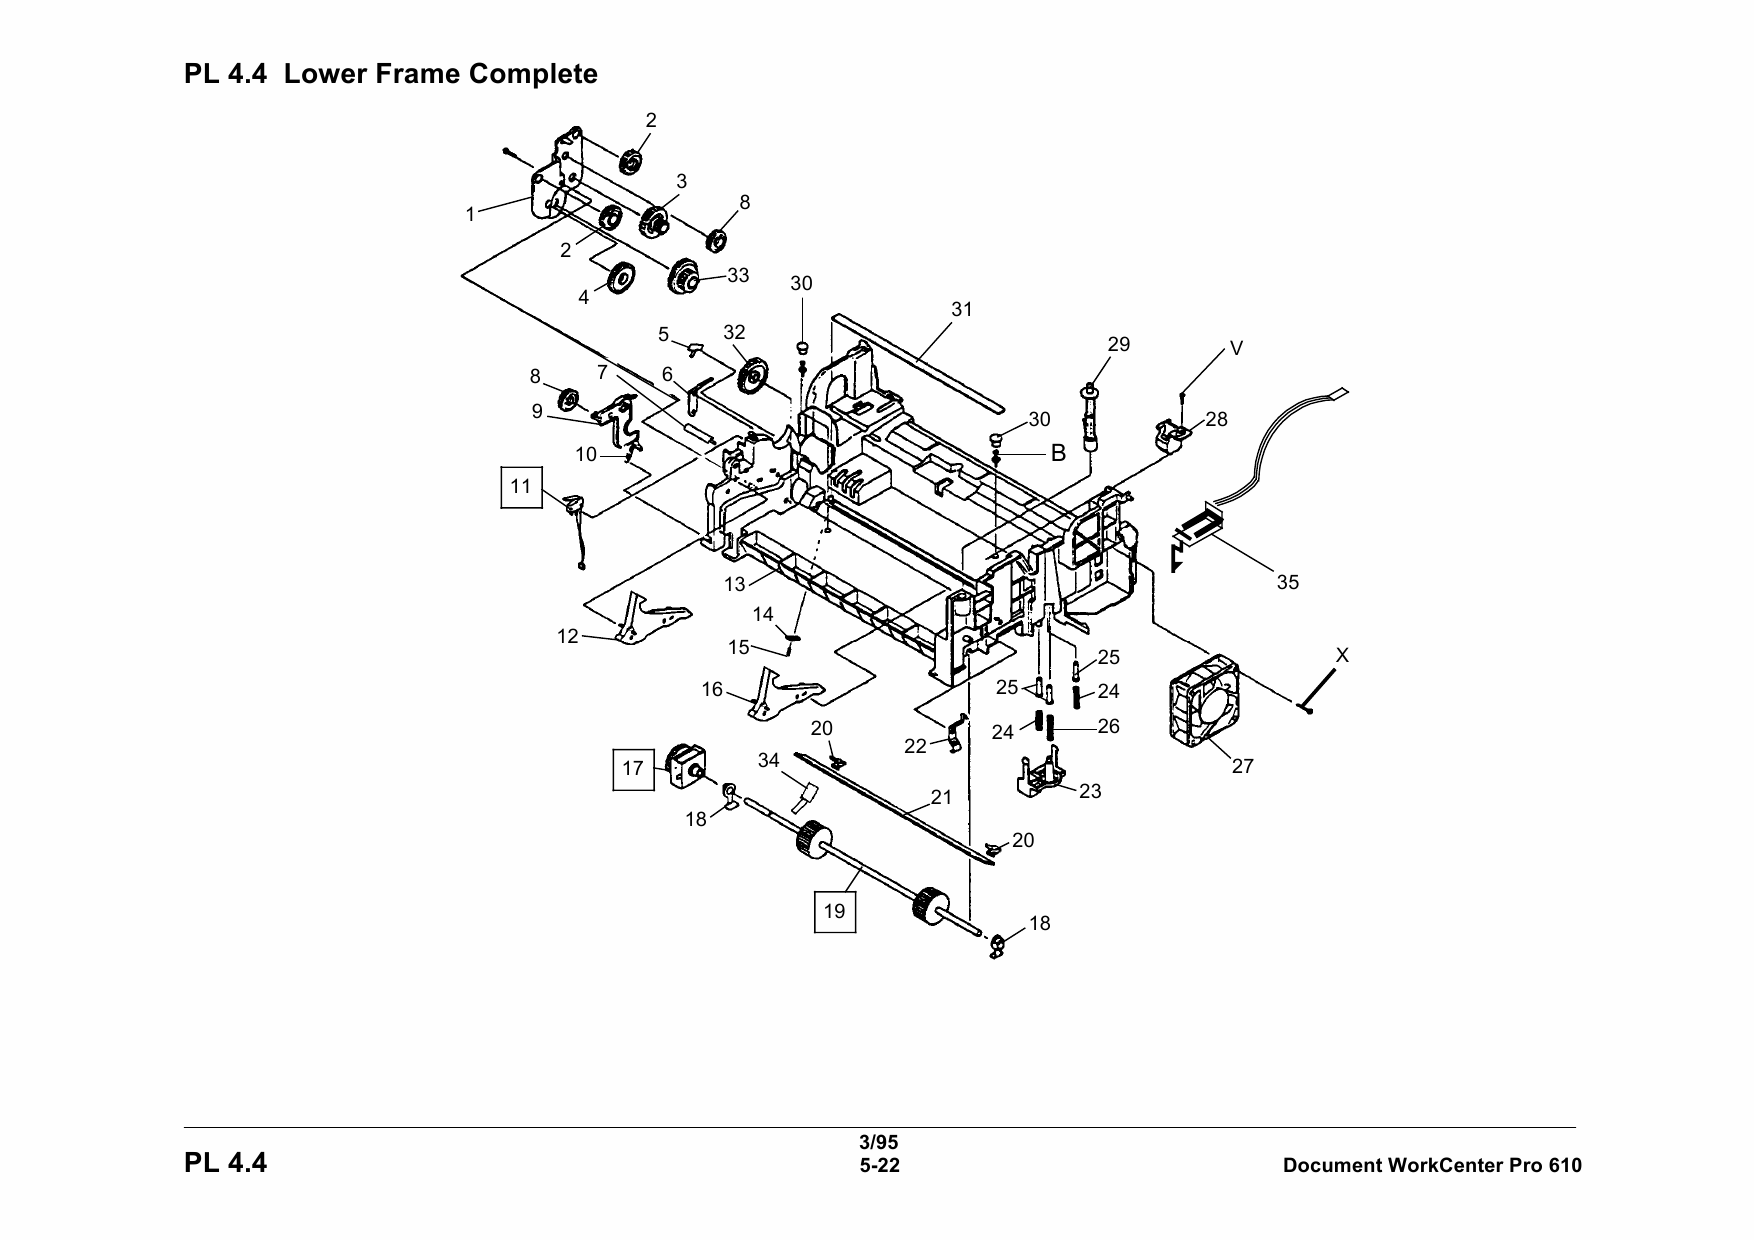 Xerox WorkCentre Pro-610 Parts List Manual